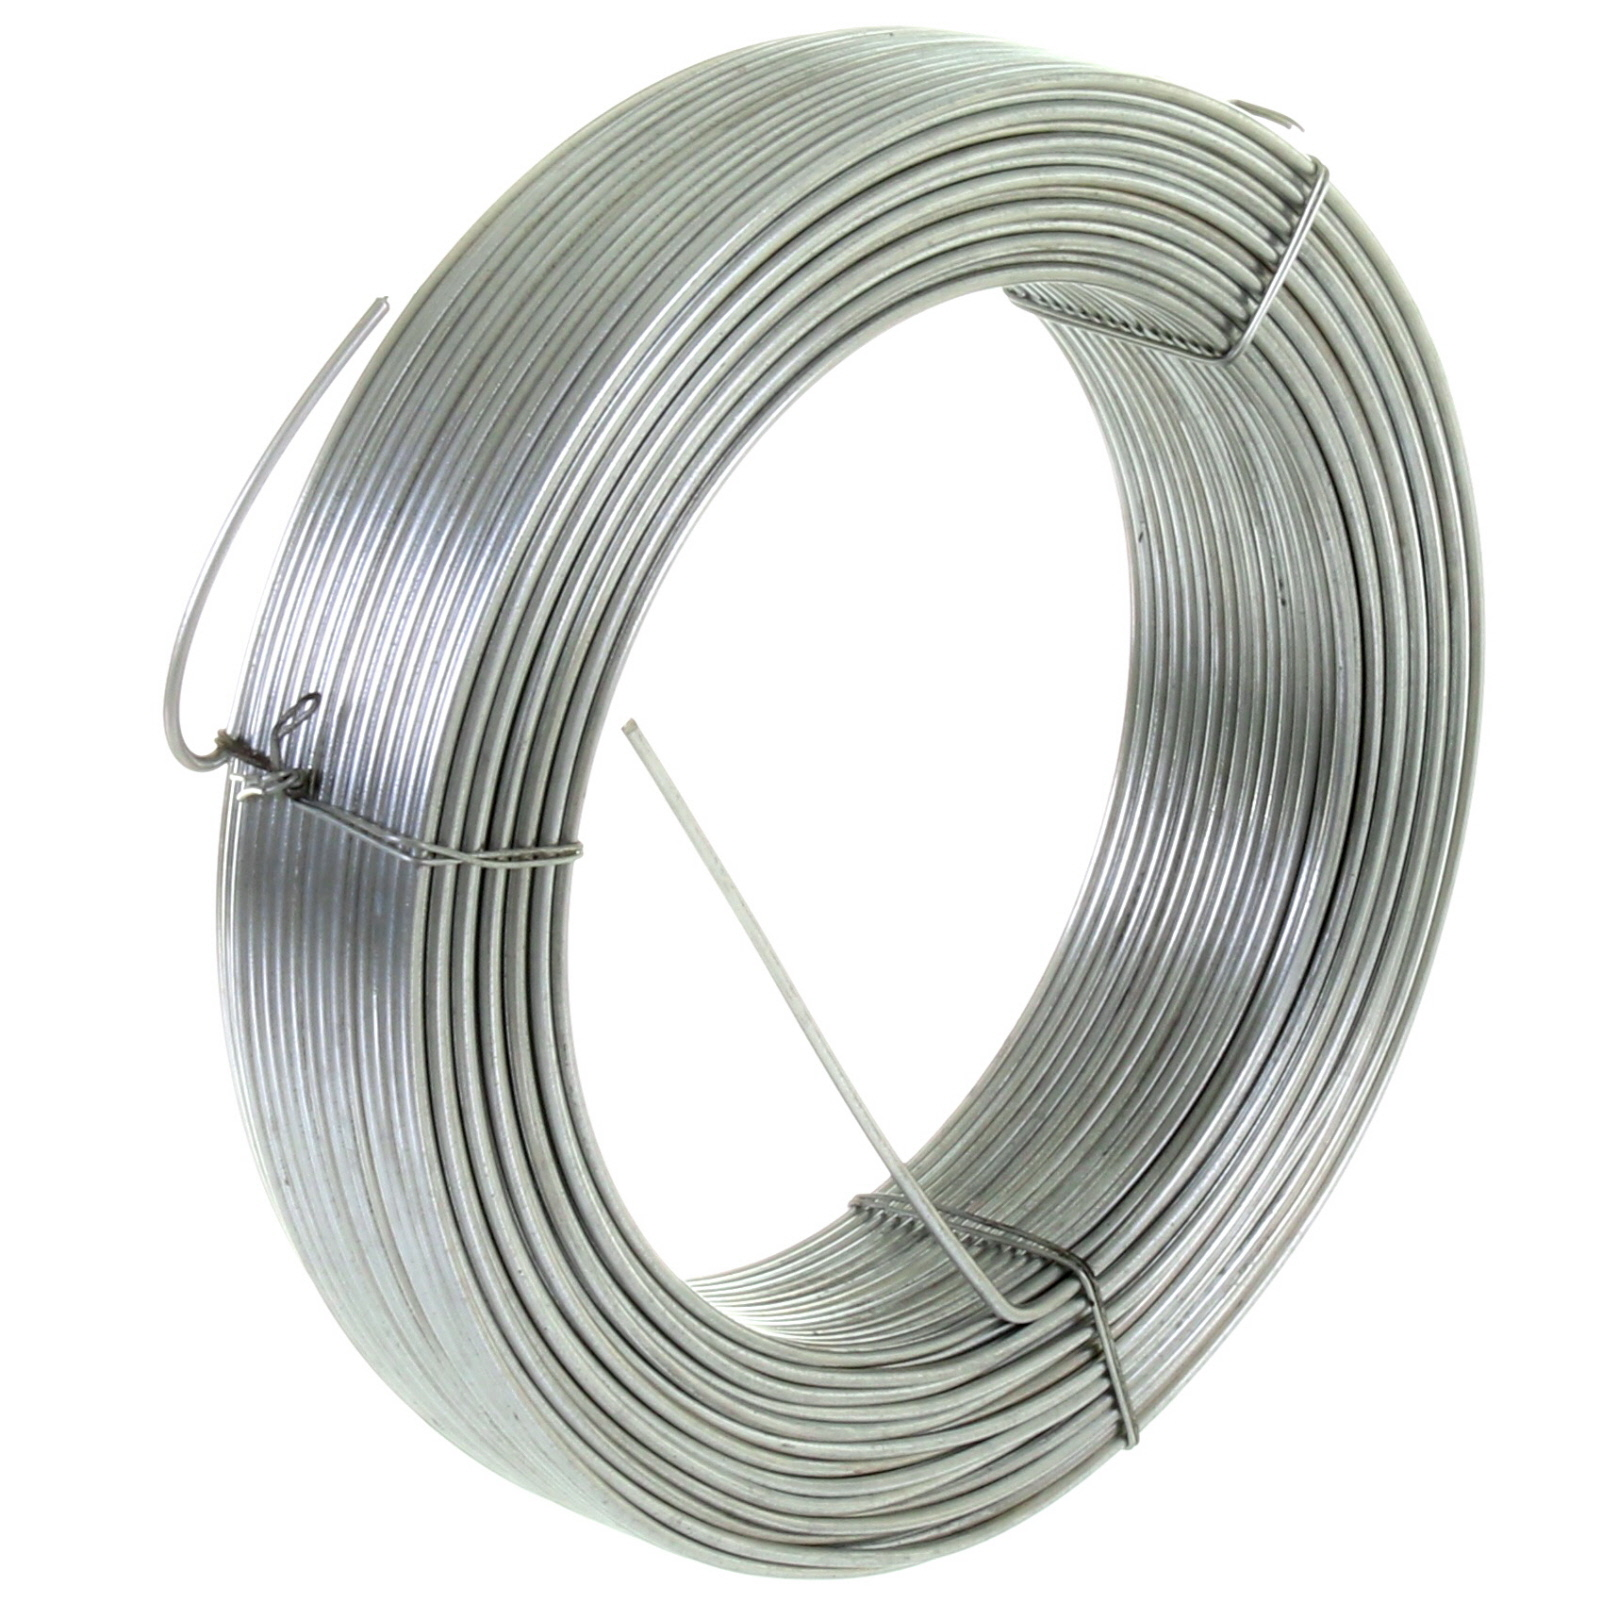 GALVANISED STEEL TENSION STRAINING LINE WIRE FENCING CHAIN LINK 100M ...